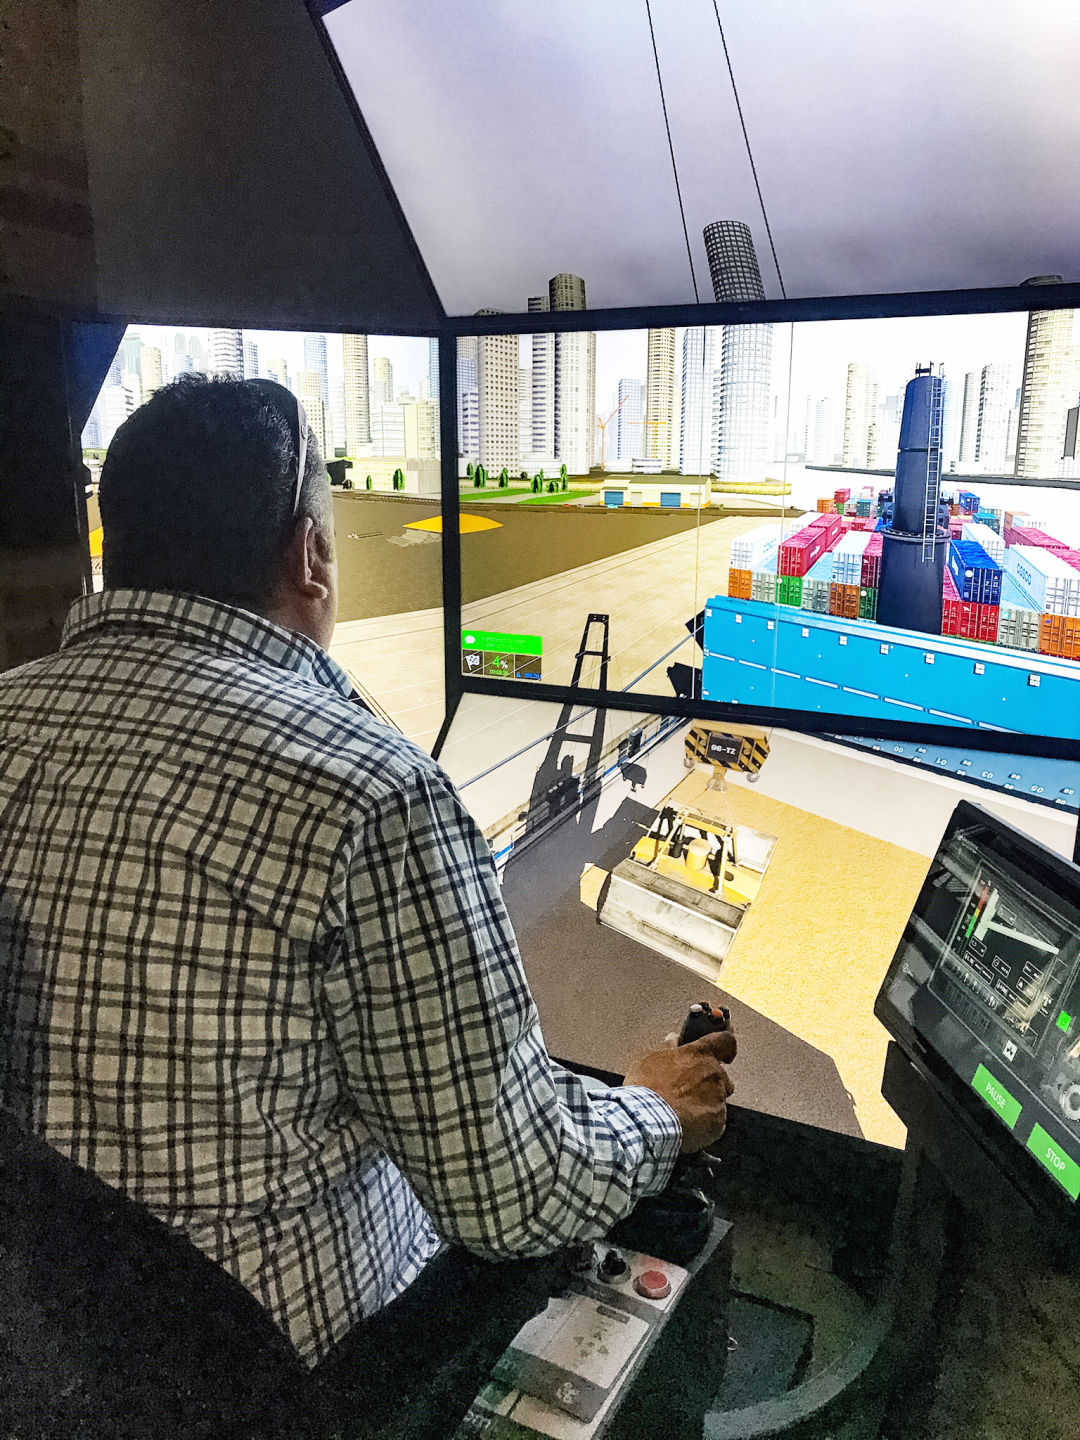 Career fair participants will be able to experience a heavy equipment simulator that demonstrates what it feels like to operate a broad spectrum of machinery.